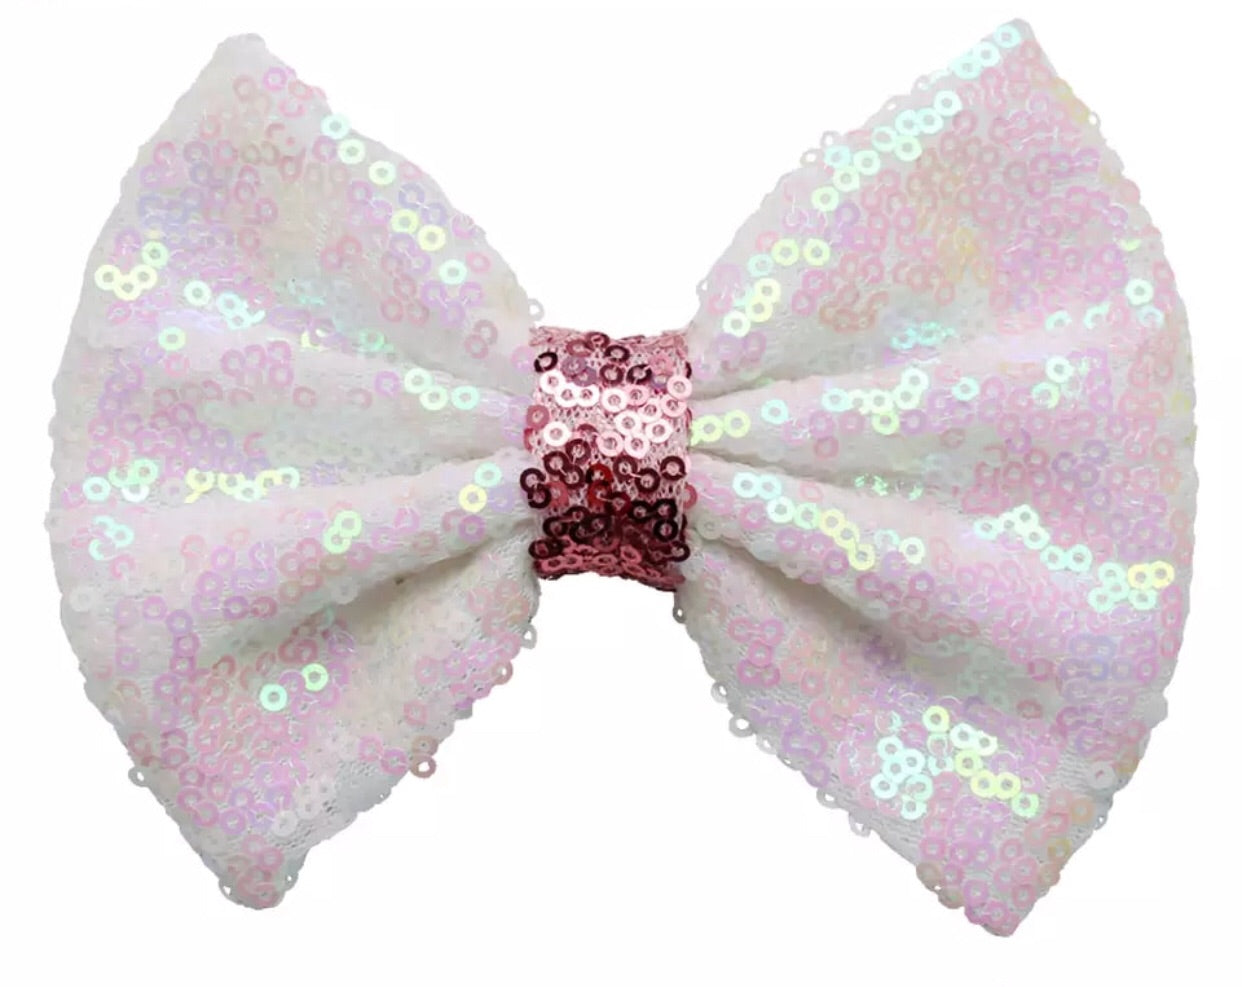 Large Sequin Bow - White with Light Pink center